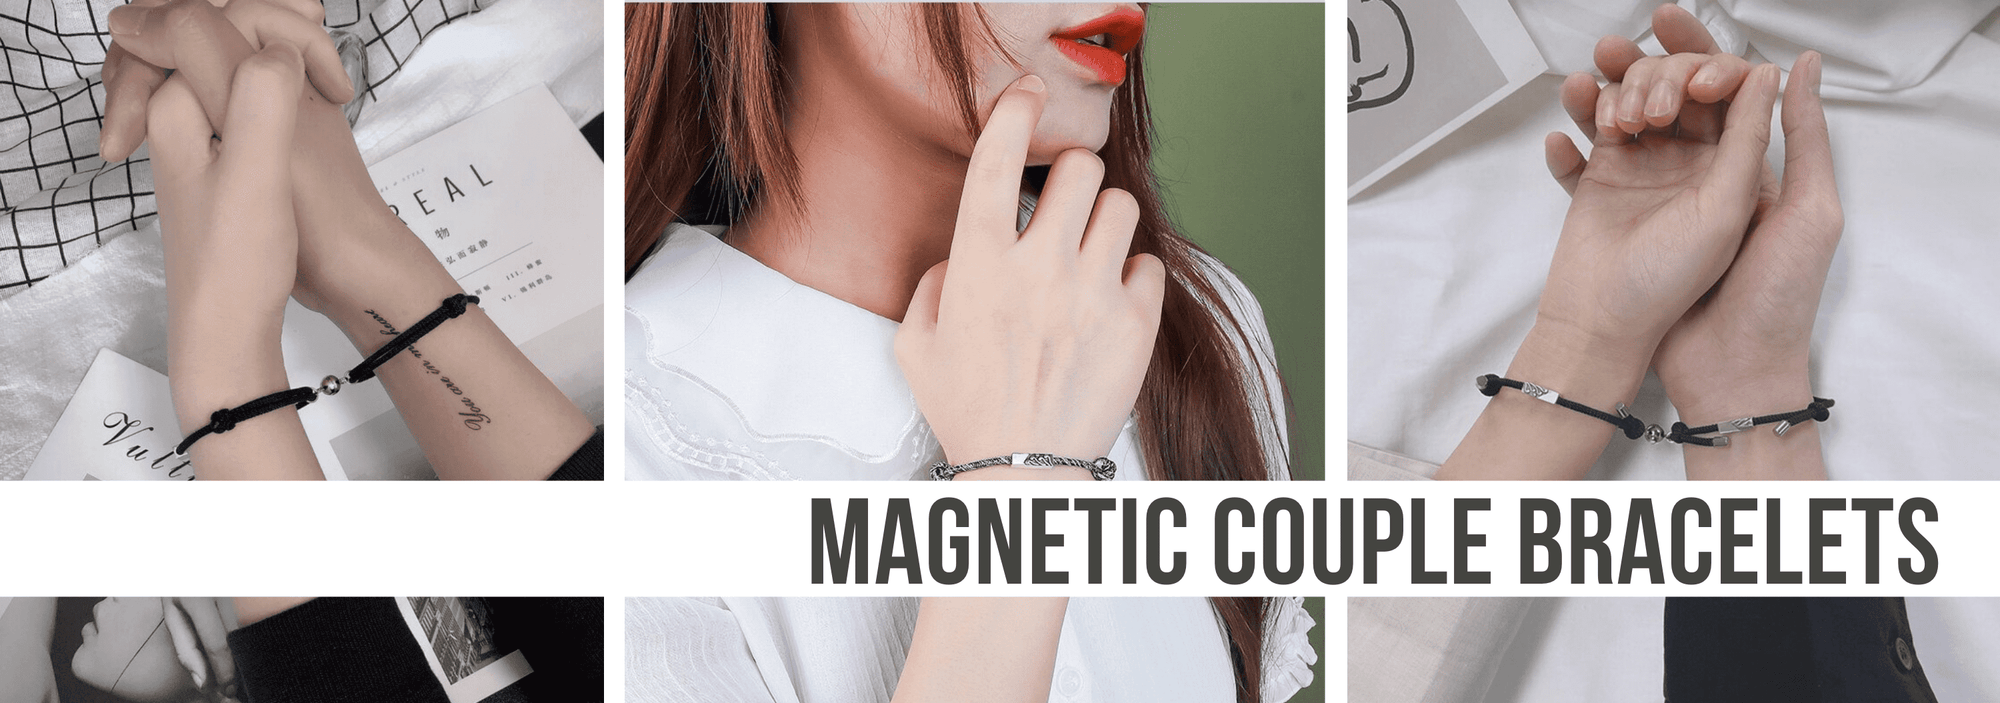 Magnetic Couple Bracelets